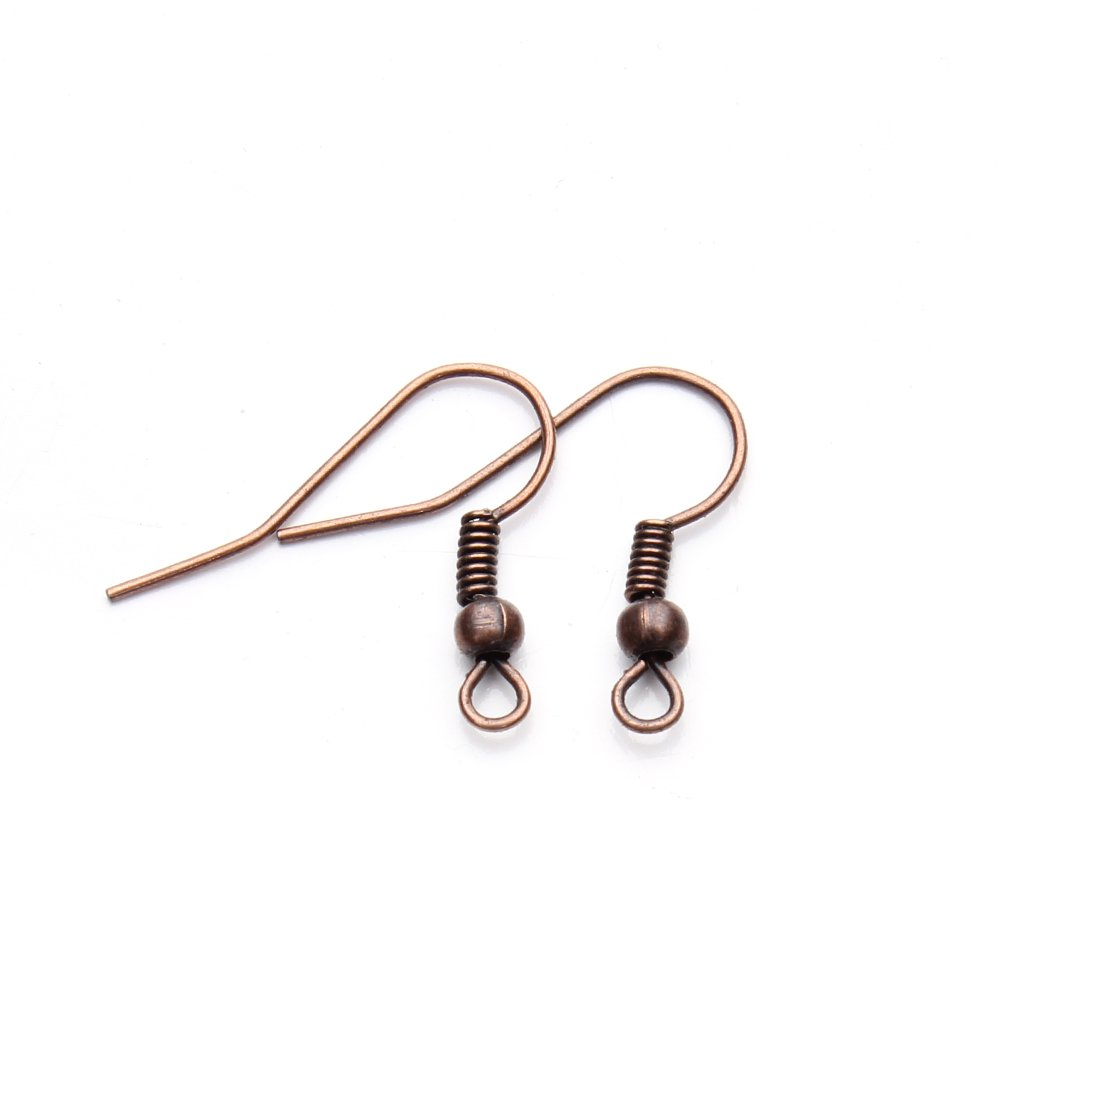 Linsoir Beads Iron Wire Earring Hooks with Large Loop Packed of 200 Antique Bronze Plated